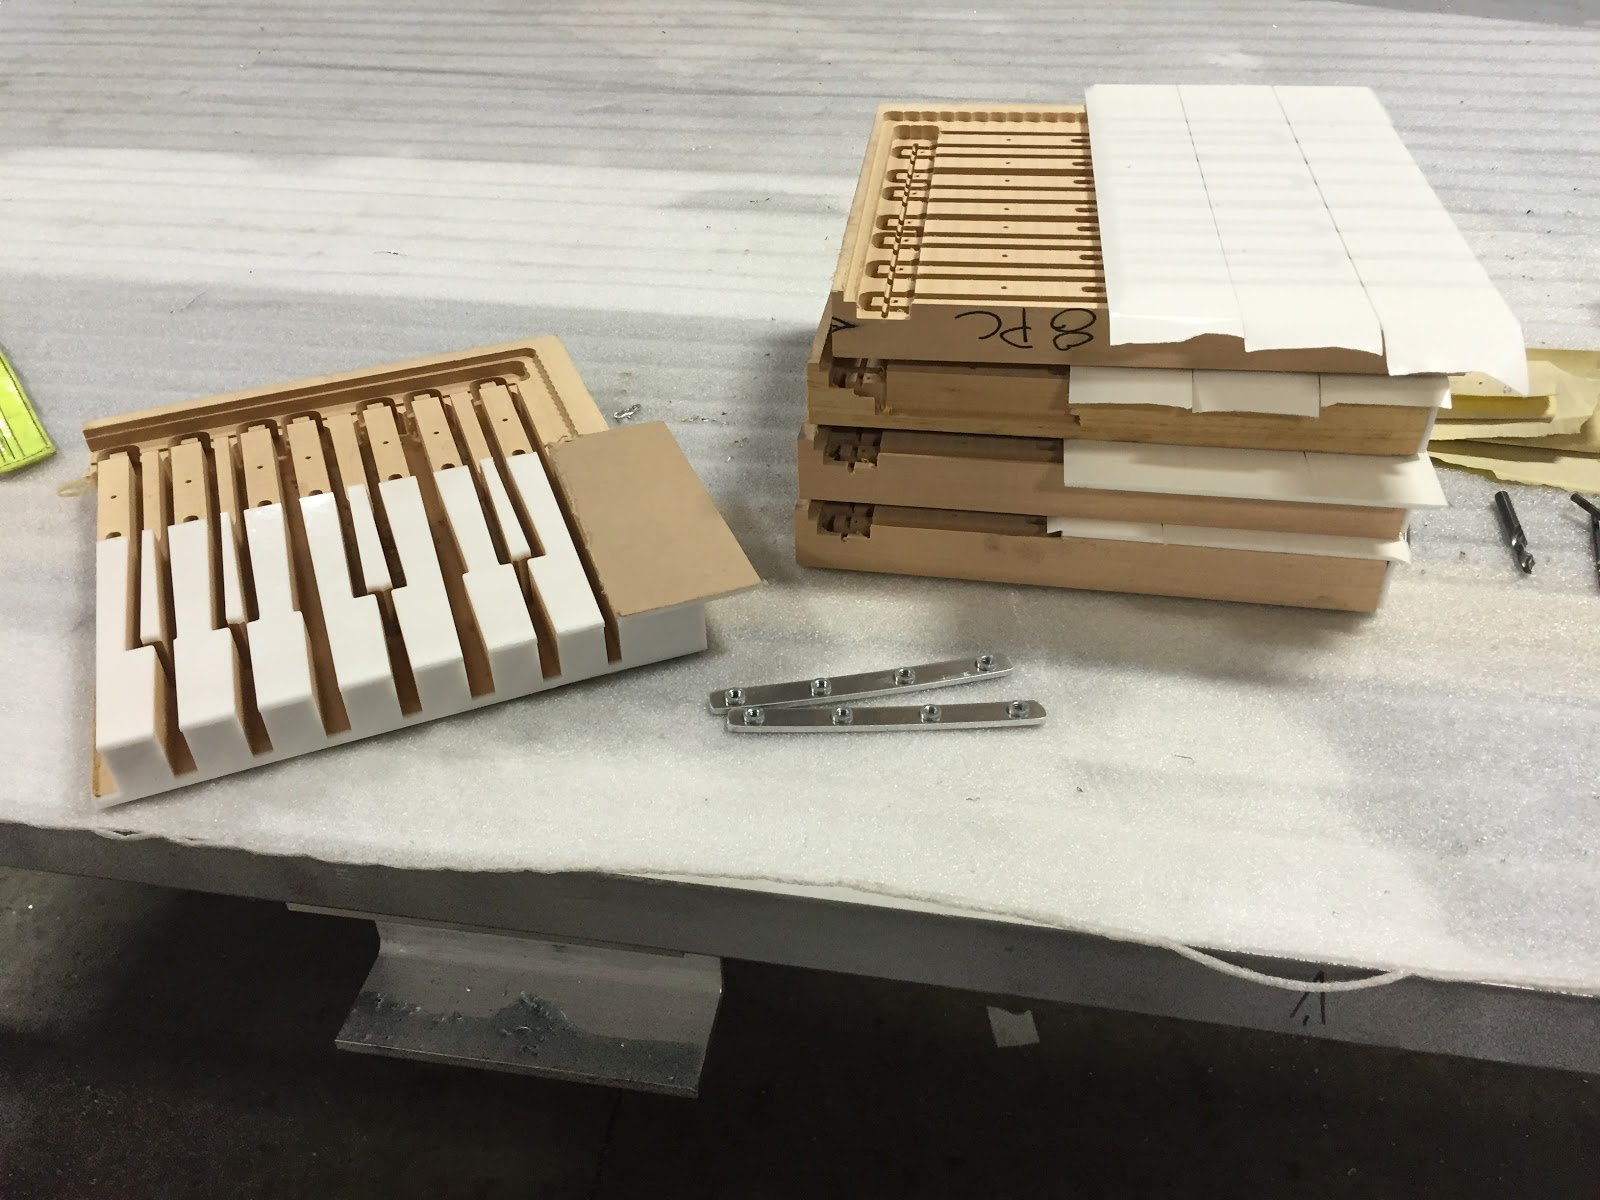 Custom Piano Keys for Pianoarc